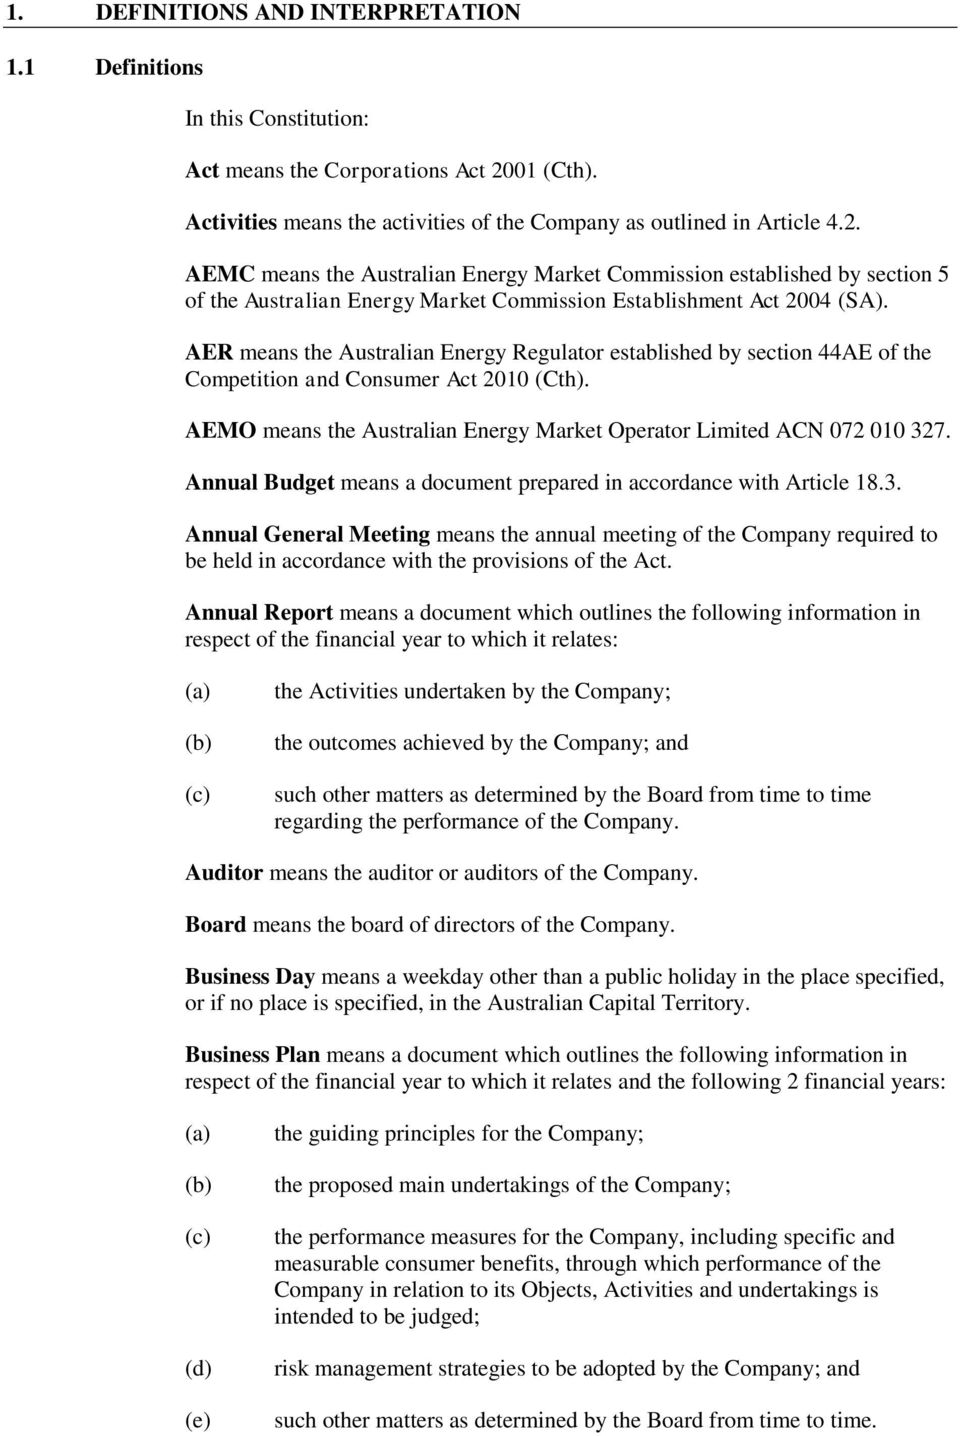 AEMC means the Australian Energy Market Commission established by section 5 of the Australian Energy Market Commission Establishment Act 2004 (SA).